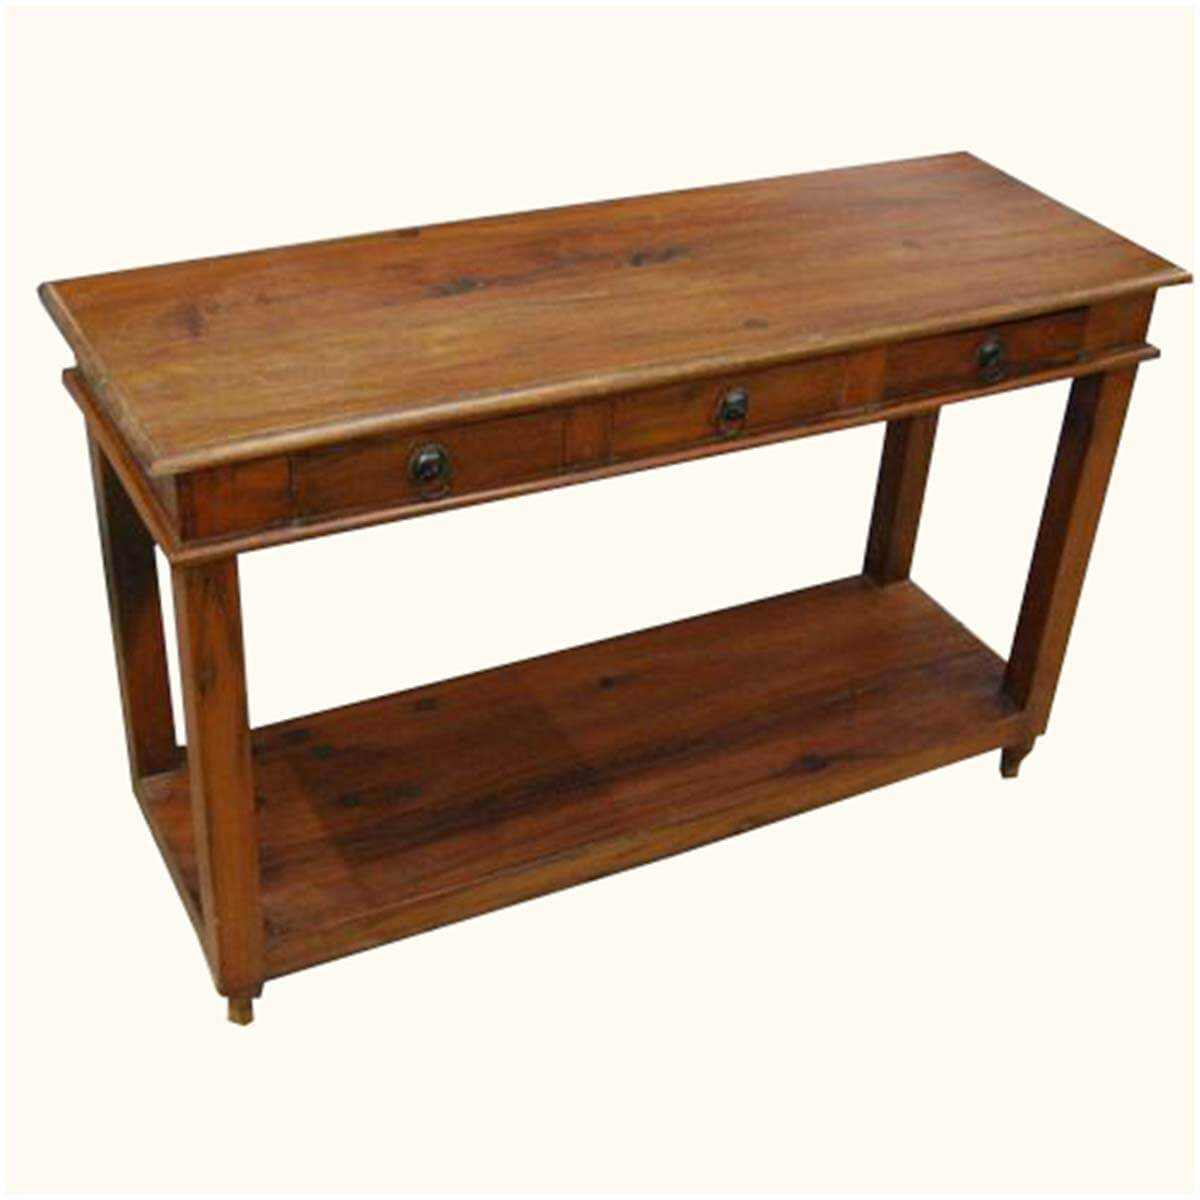 Foyer Console : Solid wood entry sofa hall console foyer table w drawers